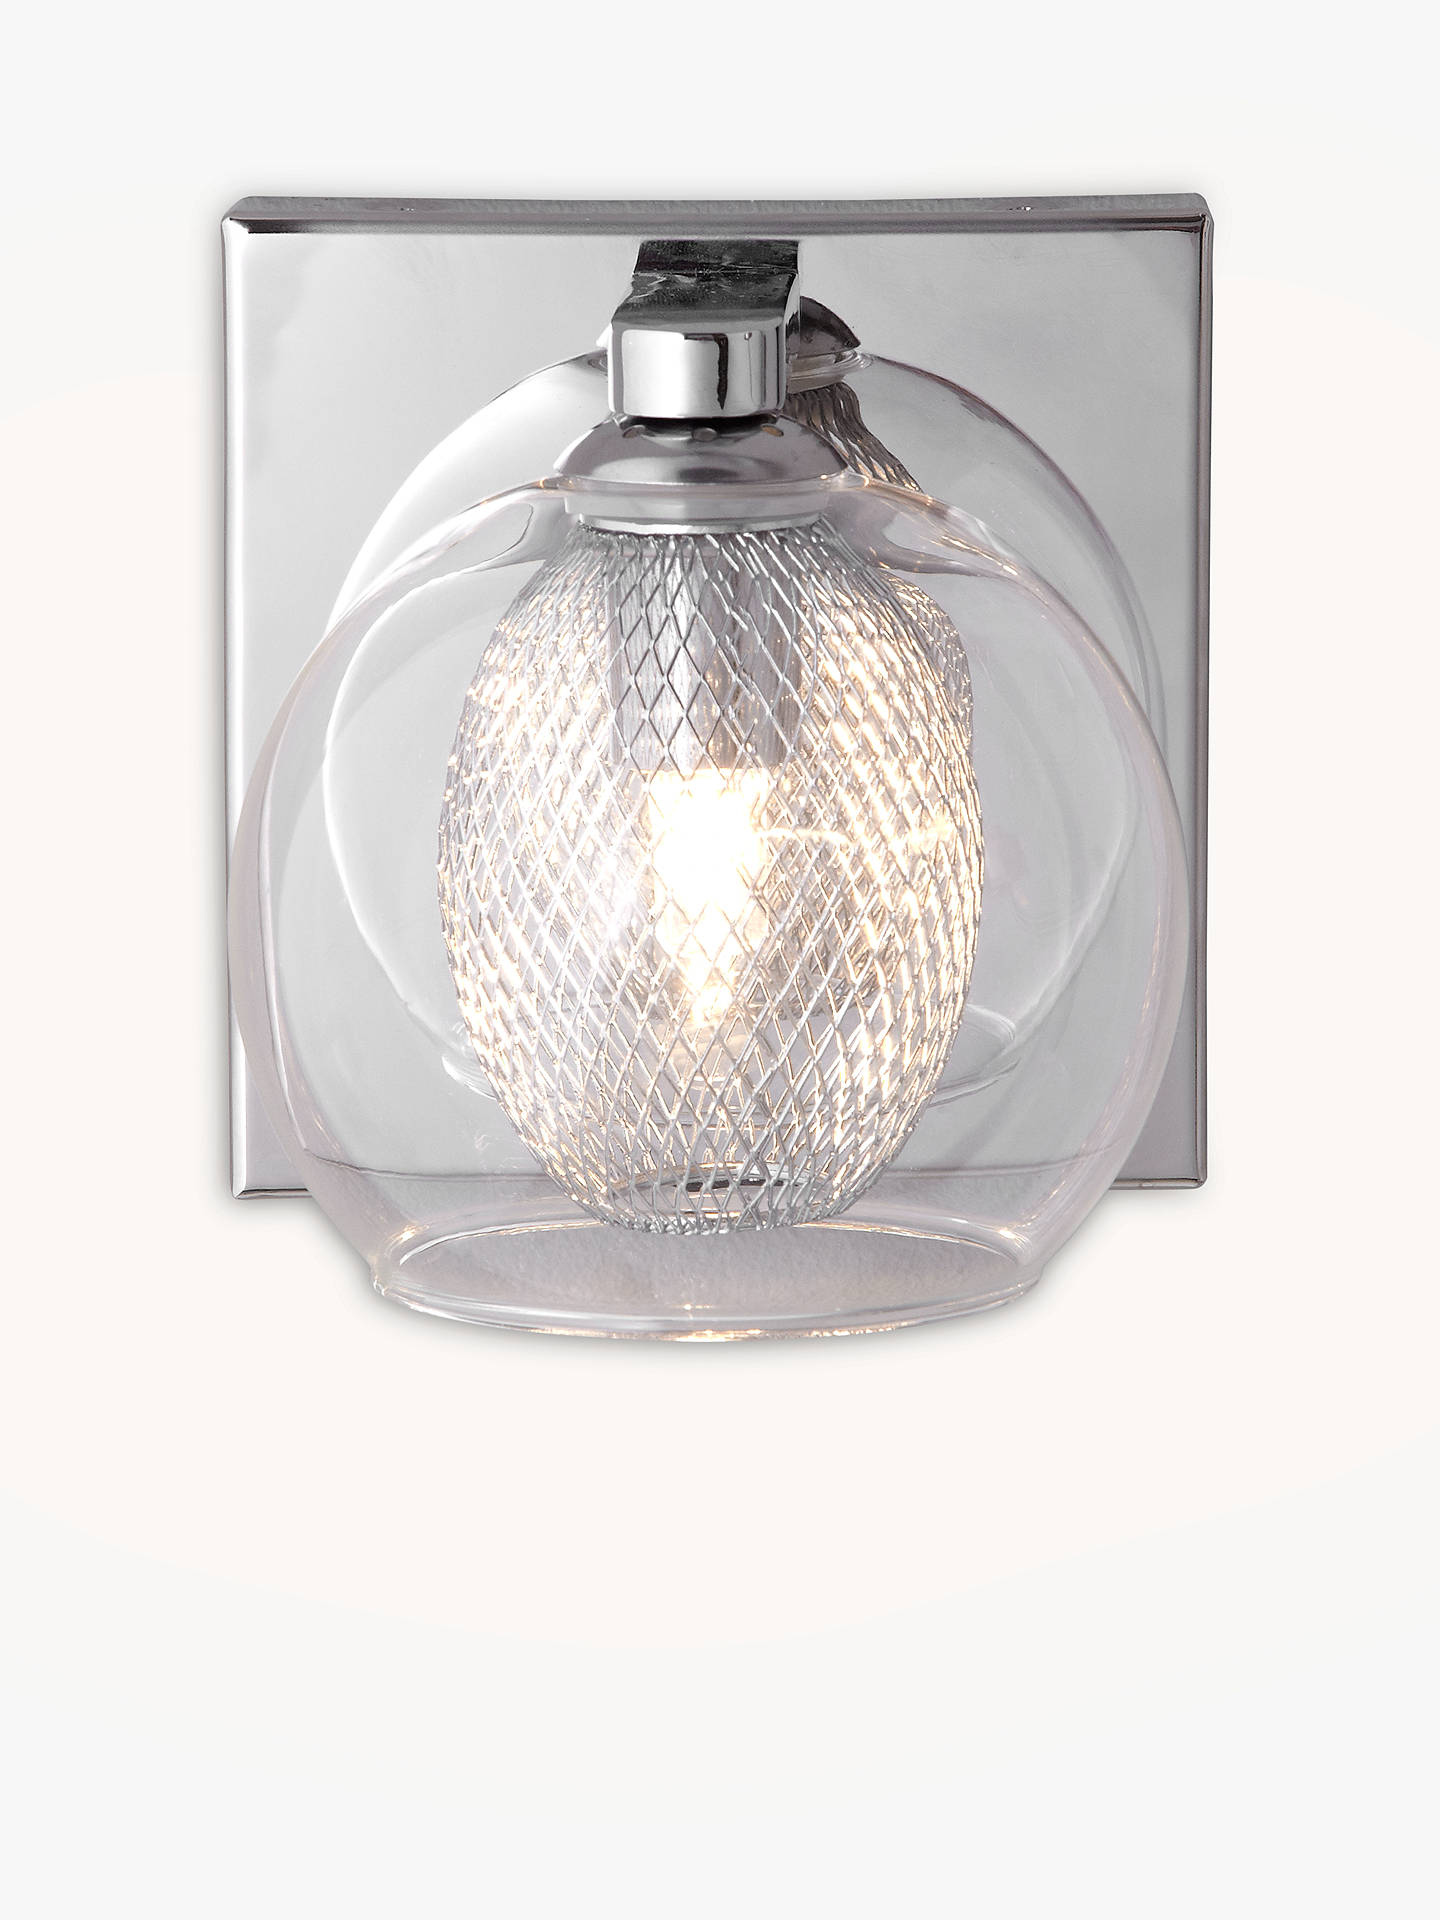 Buy John Lewis & Partners Knightley Mesh Net Wall Light Online at johnlewis.com